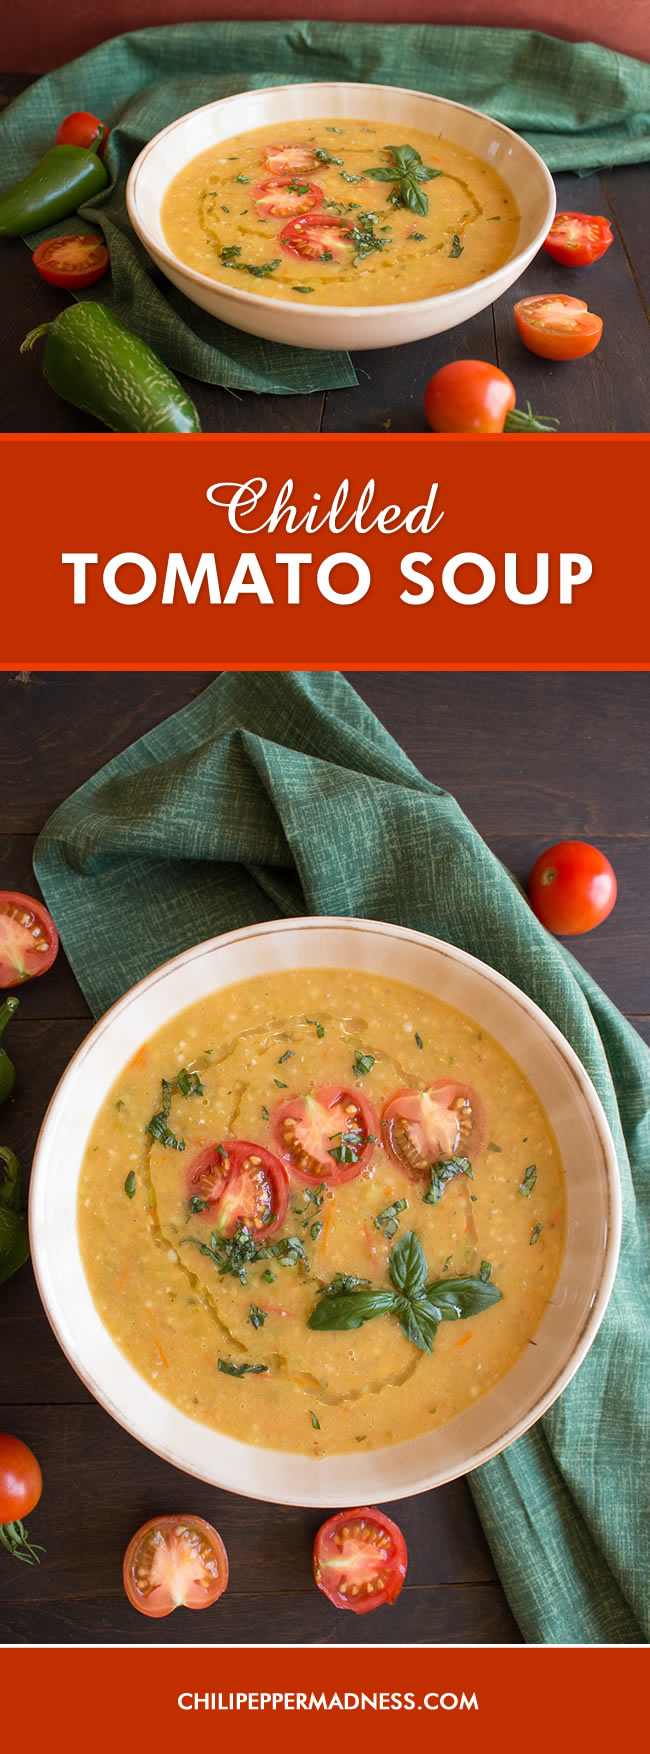 Garden Fresh Chilled Tomato Soup (with Peppers) - Recipe